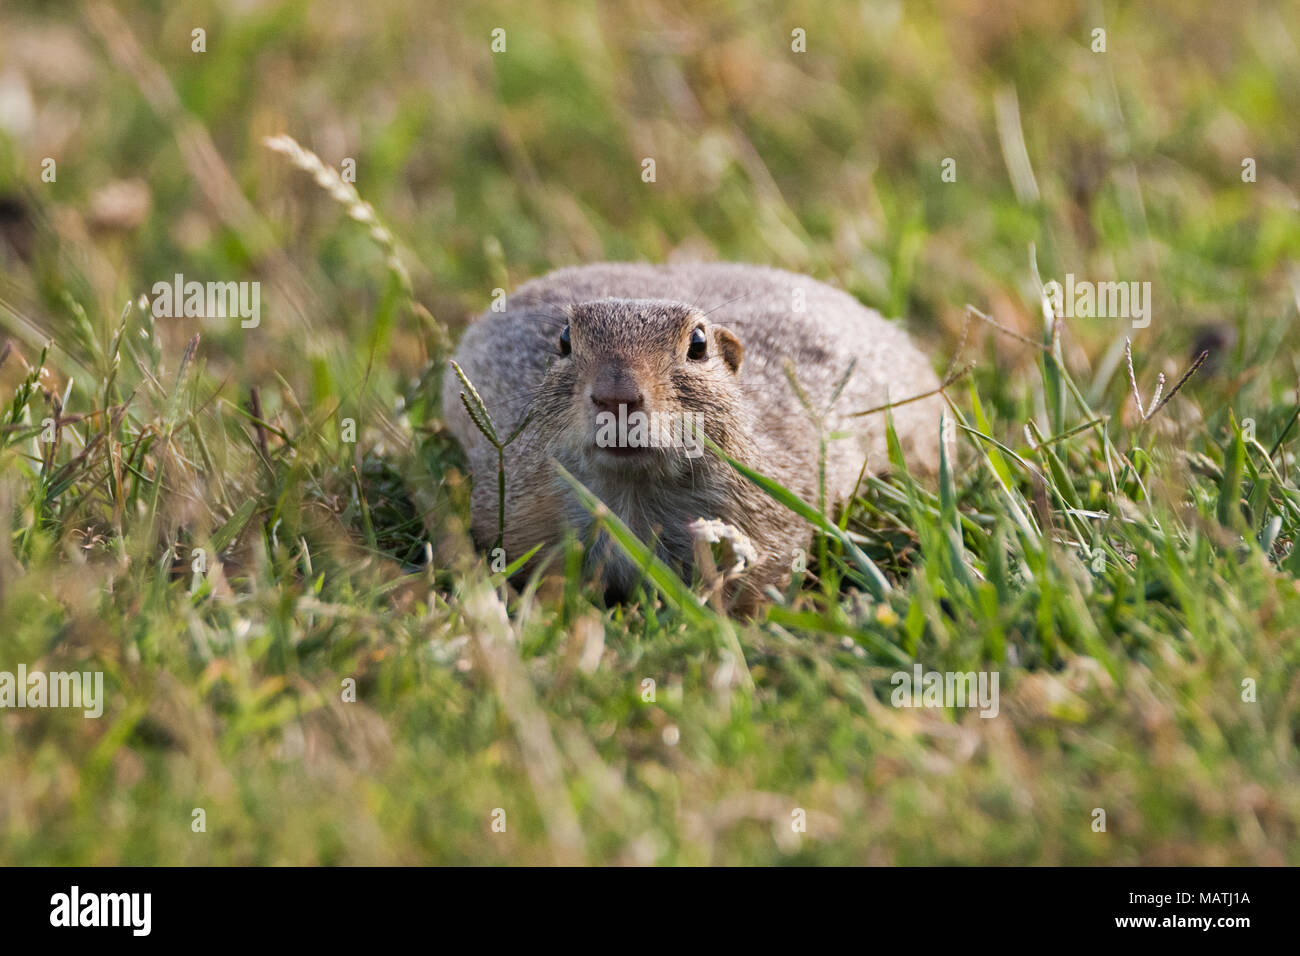 European ground squirrel (Spermophilus citellus), European souslik Stock Photo